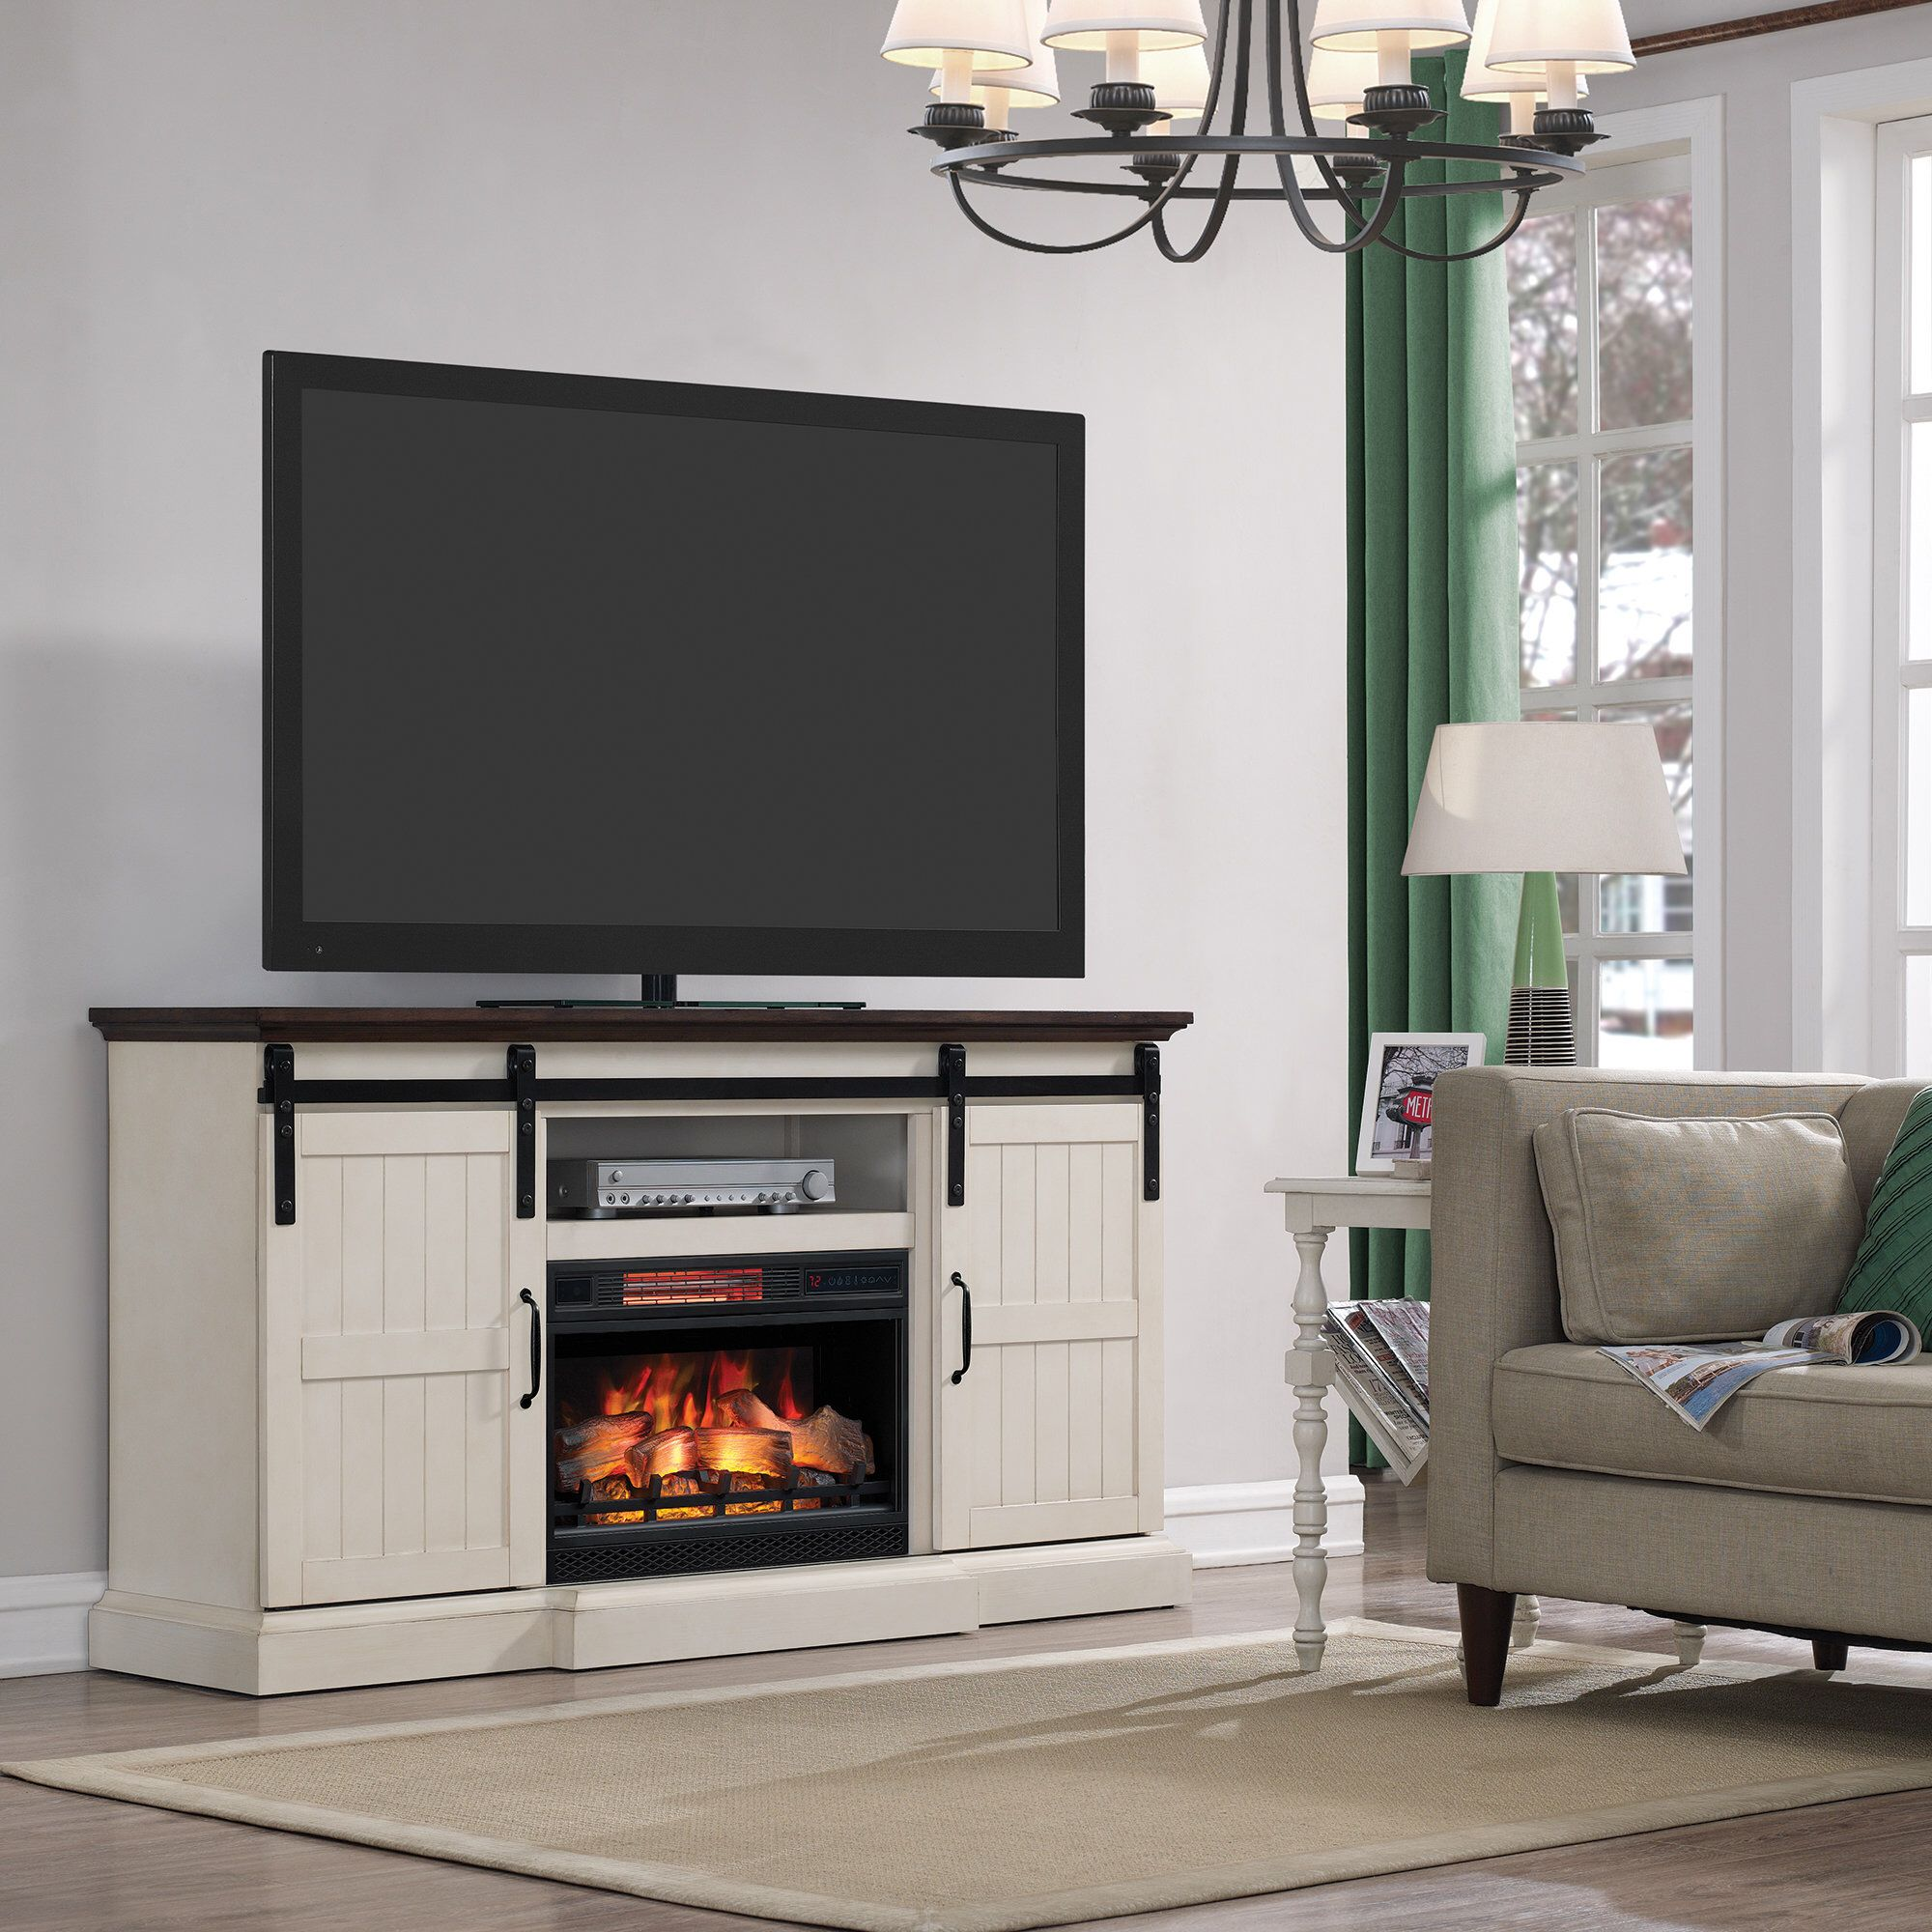 """Electric Fireplace Barn Door Best Of Glendora 66 5"""" Tv Stand with Electric Fireplace"""